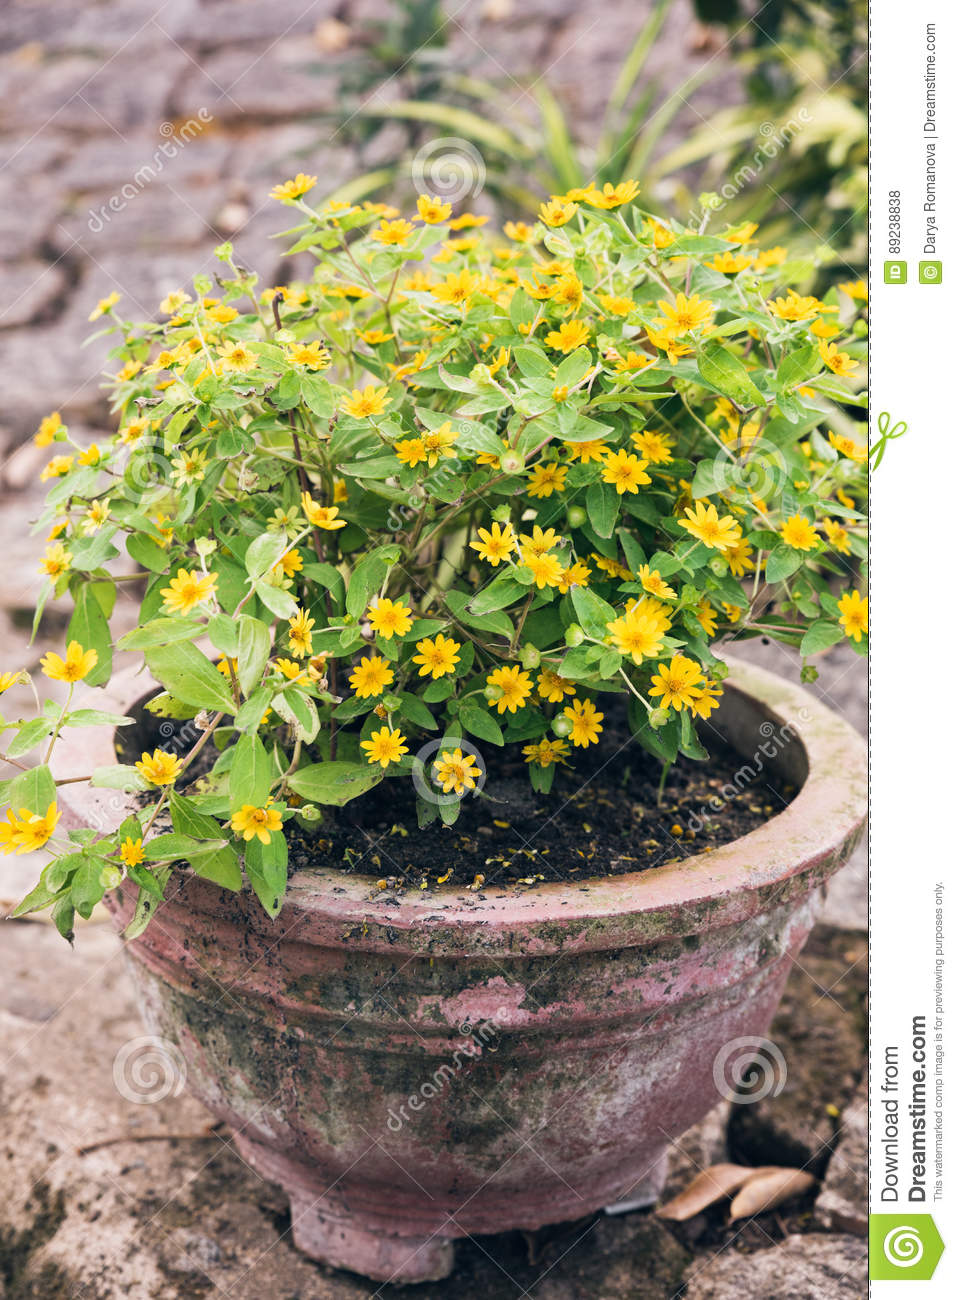 Old Ceramic Pot With Yellow Flowers Stock Photo Image Of Pink